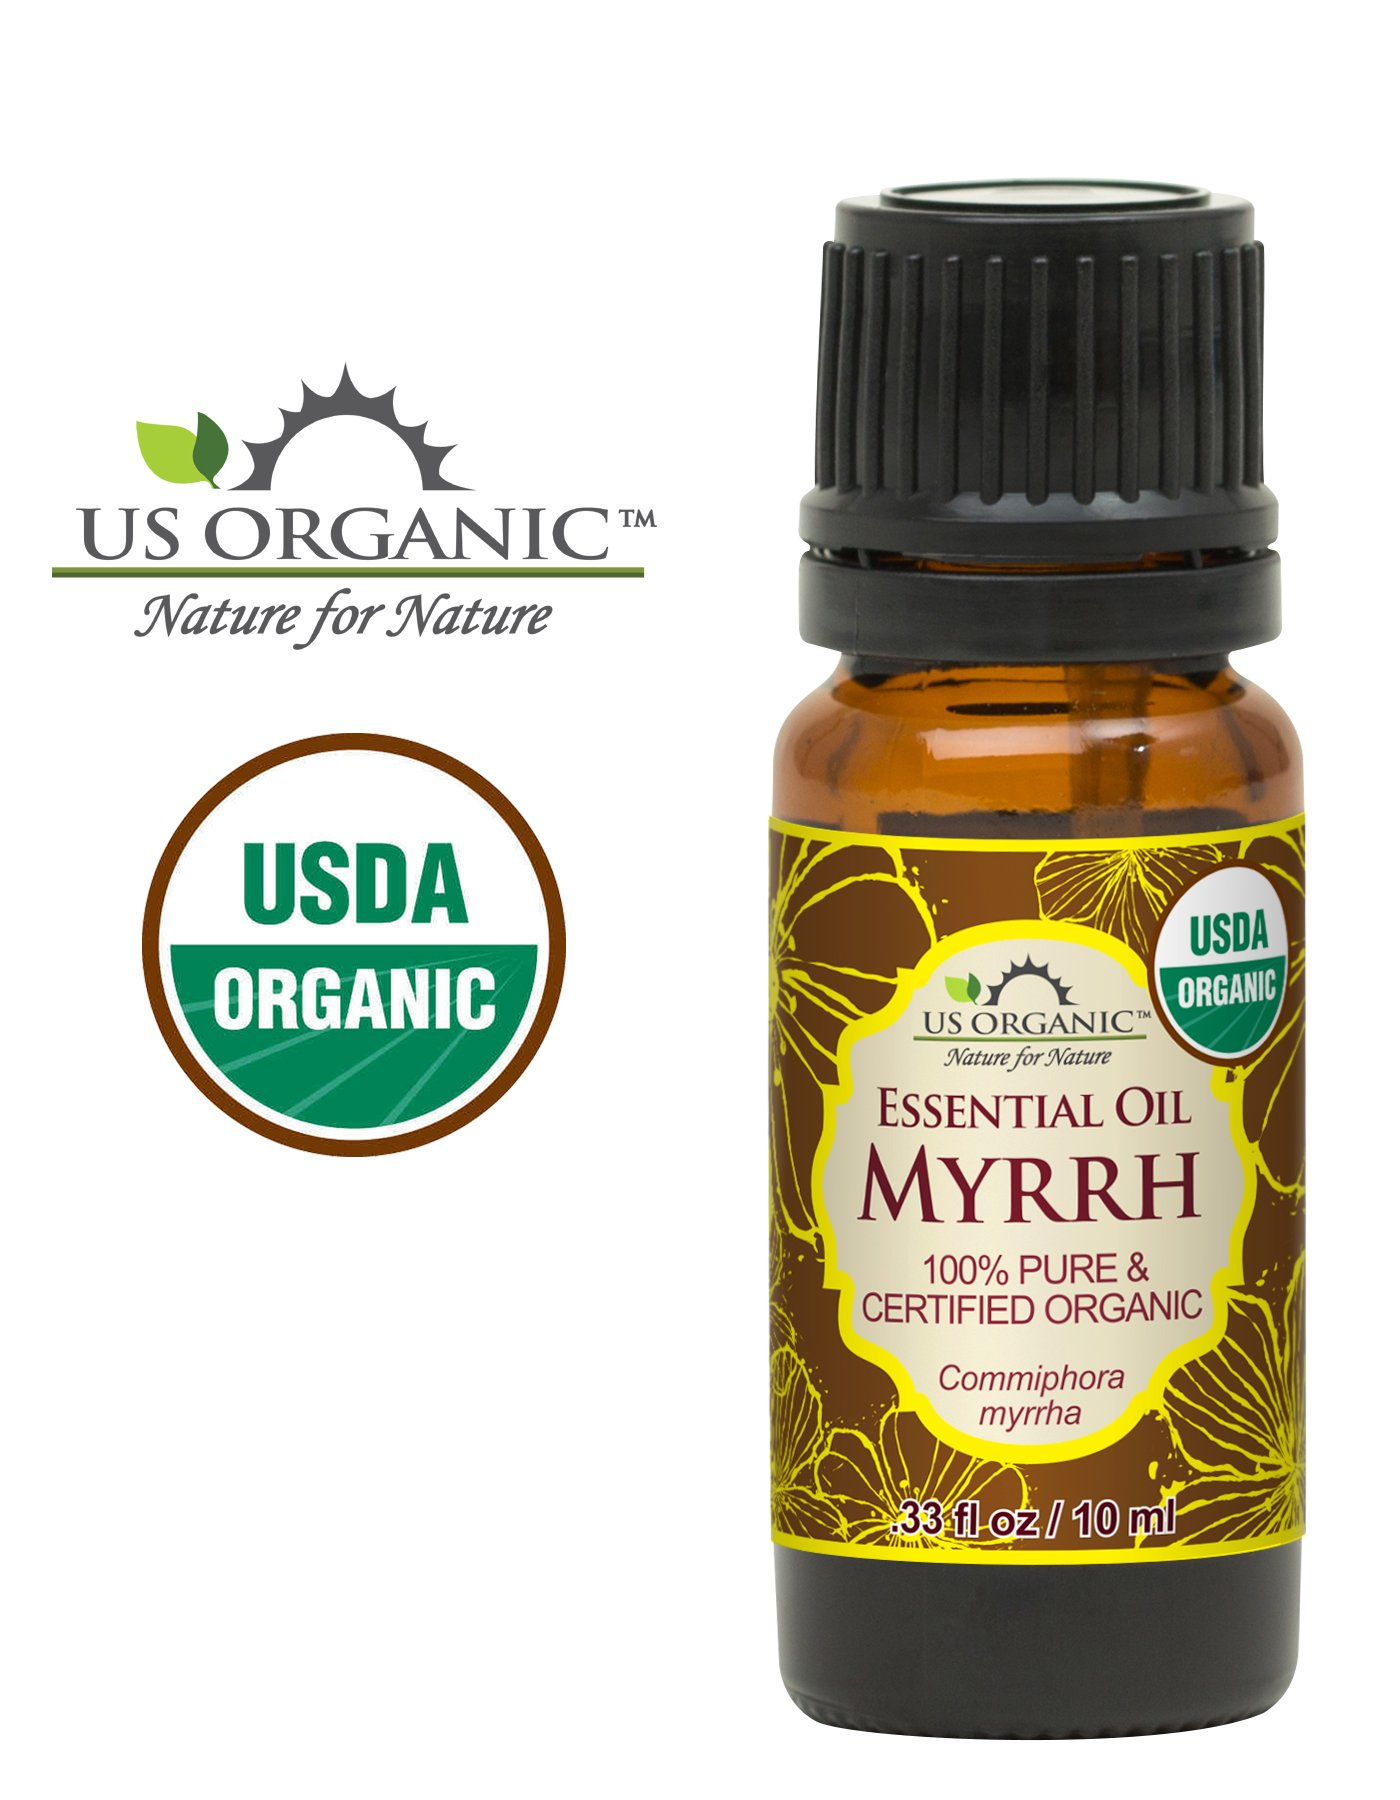 US Organic 100% Pure Myrrh (Commiphora myrrha) Essential Oil - Directly sourced from The Horn of Africa - USDA Certified Organic - Use Topically or in Diffuser - Suitable for All Skin Types (10 ml)